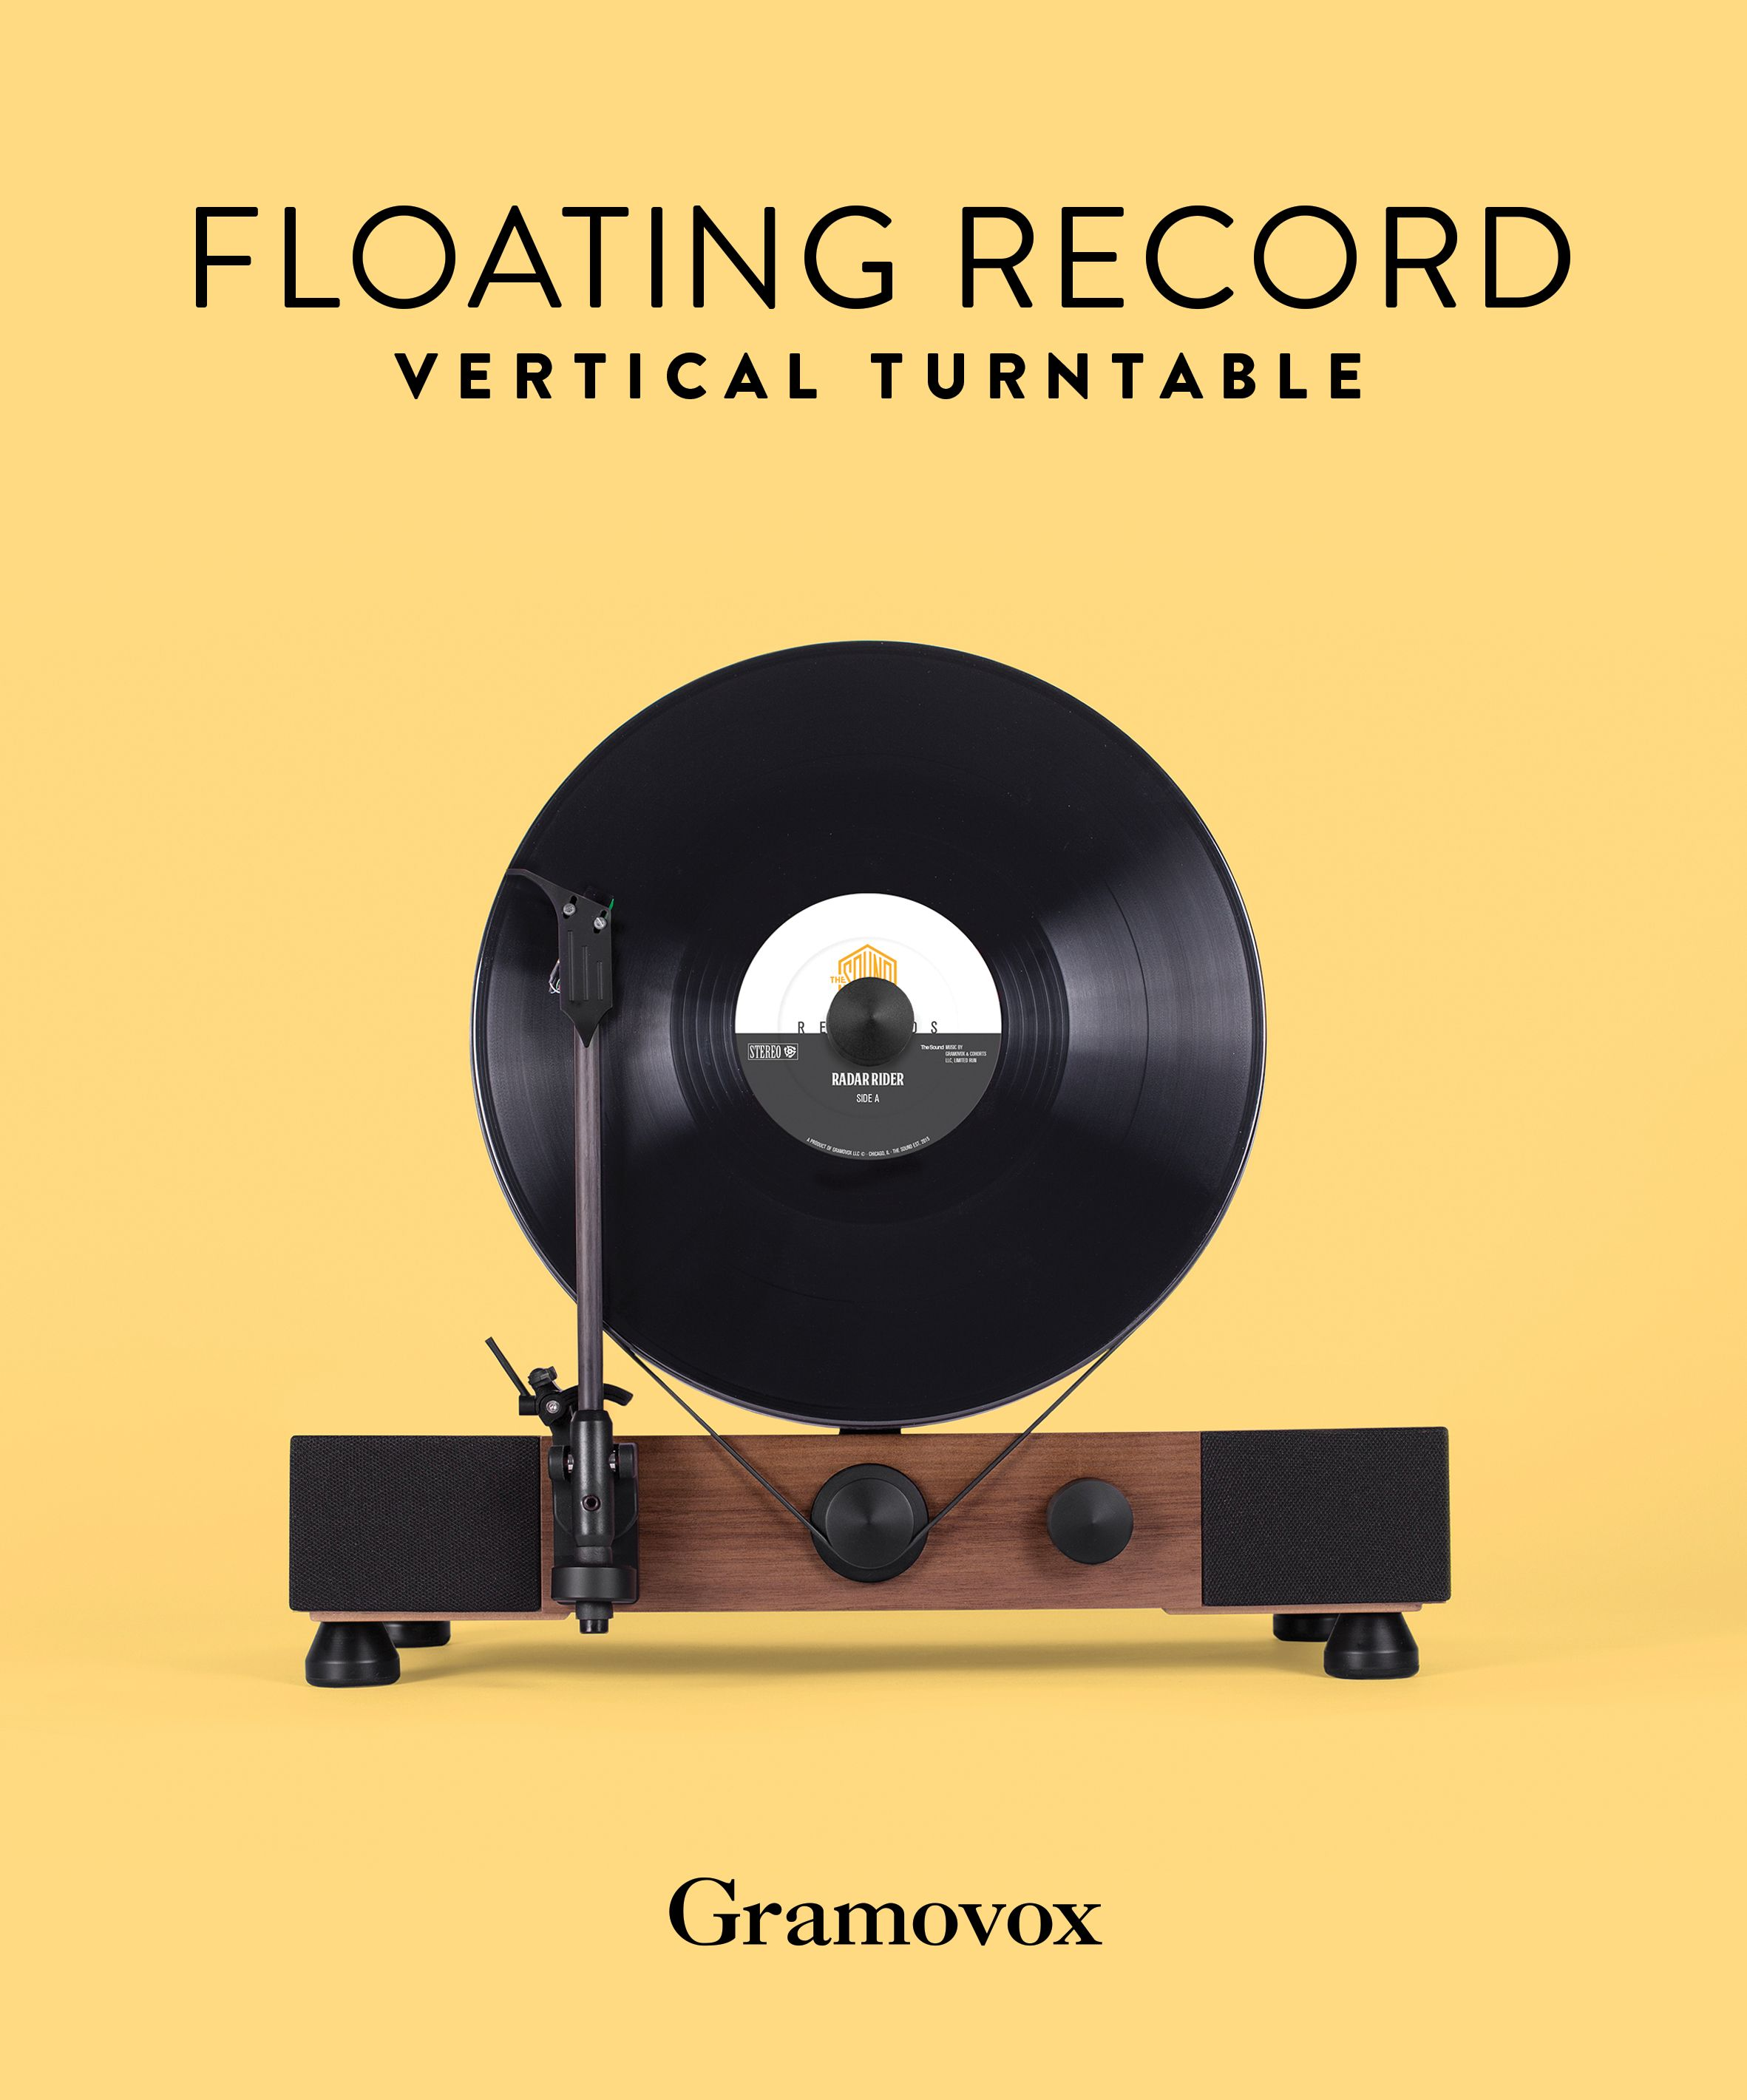 Love This Want One Sooooo Bad The Floating Record Vertical Turntable By Gramovox Floating Record Vinyl Record Player Vinyl